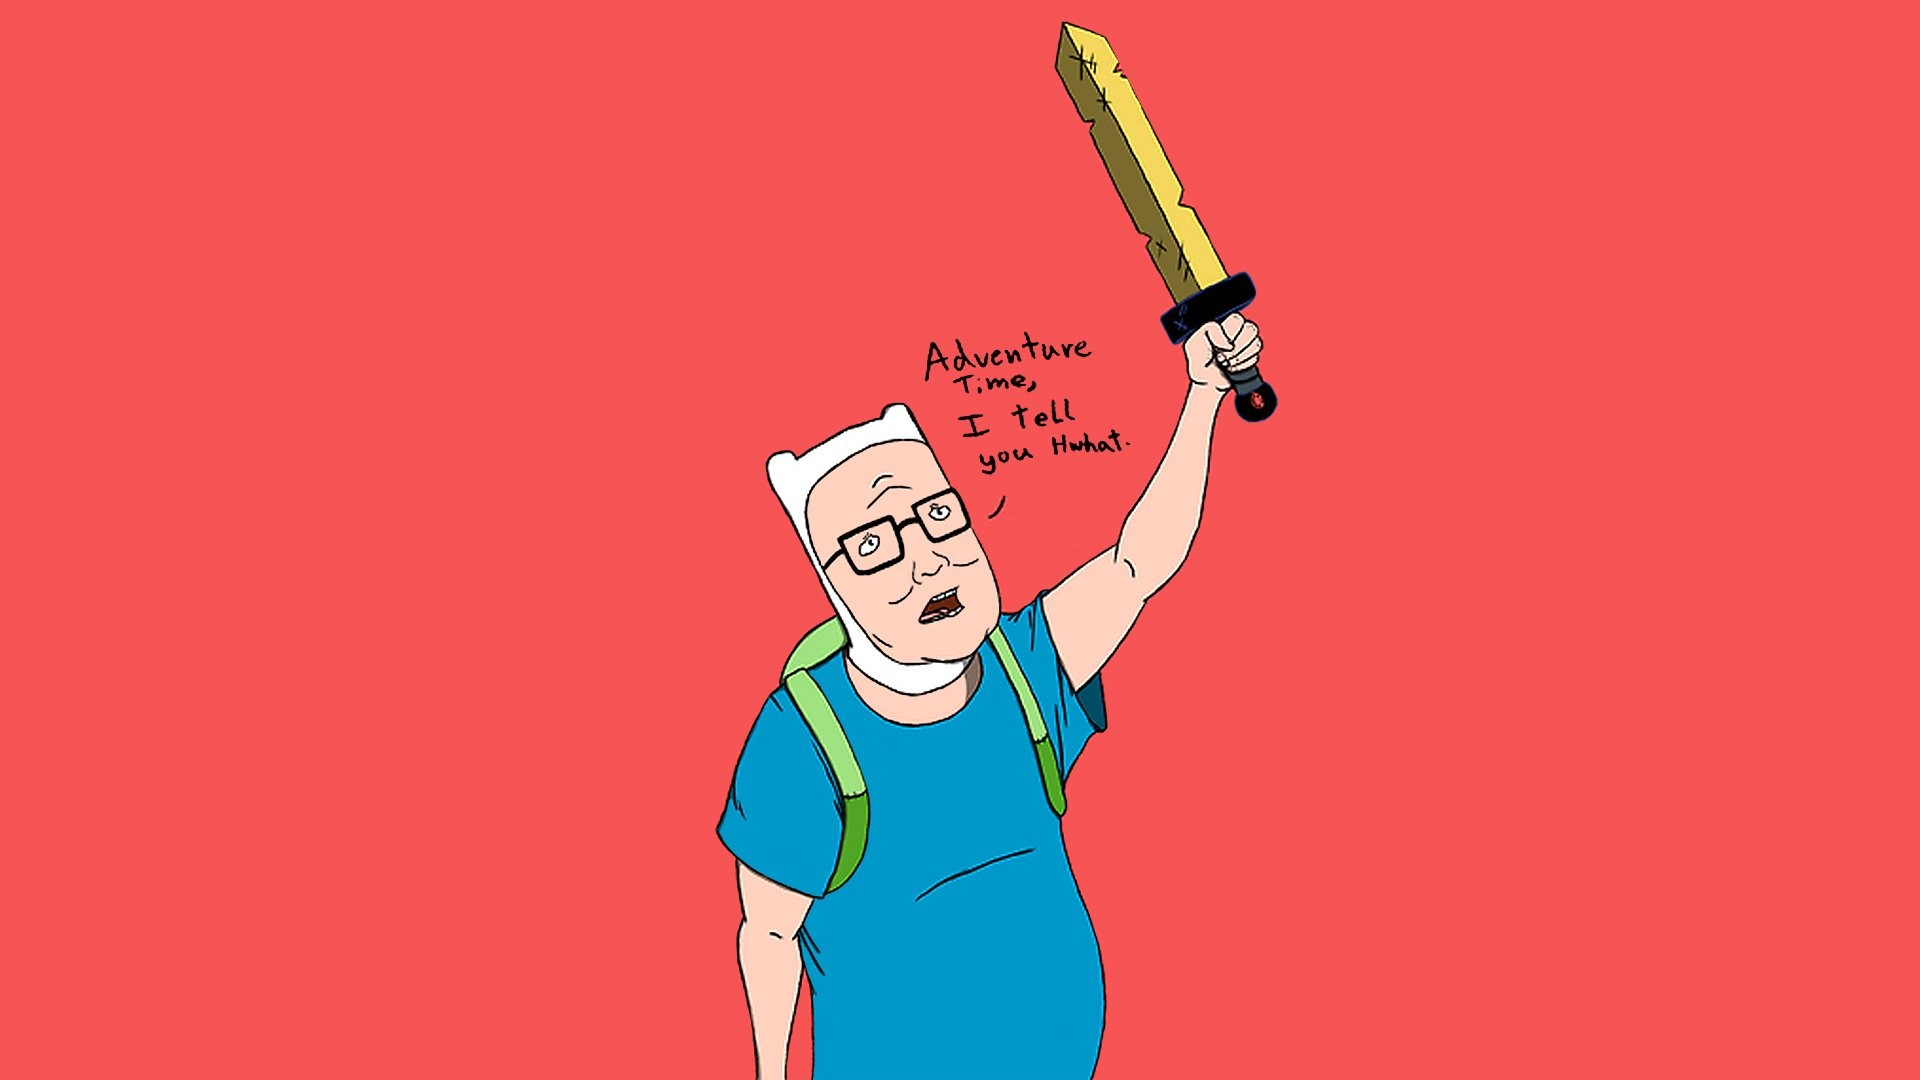 Adventure Time King Of The Hill Wallpaper